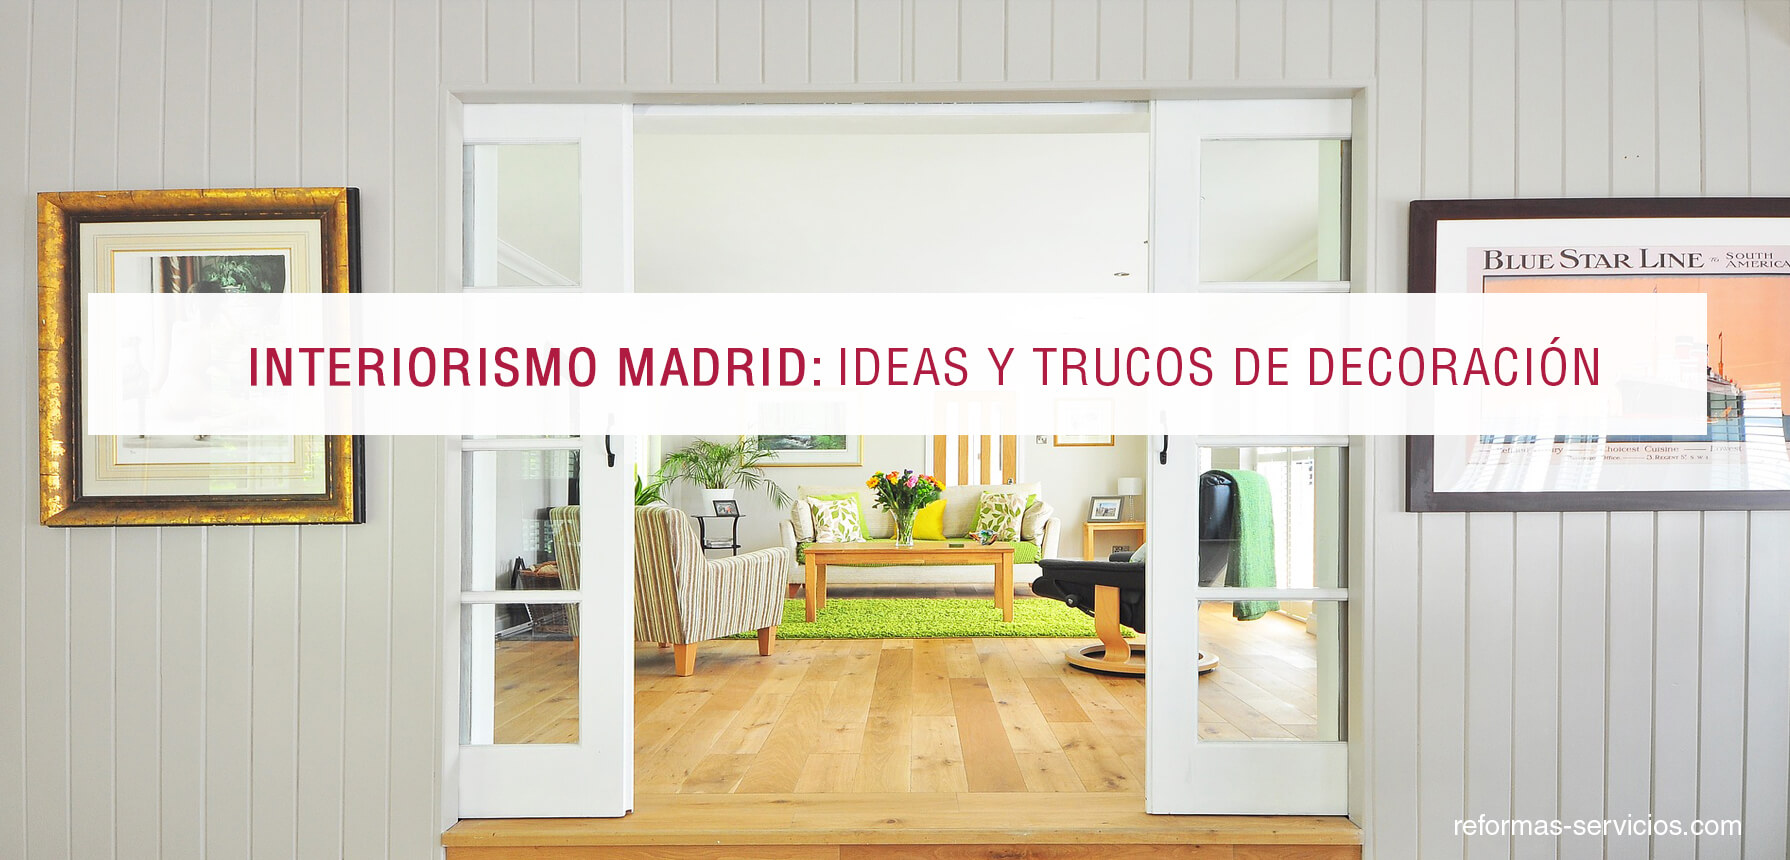 Interiorismo madrid for Ideas interiorismo